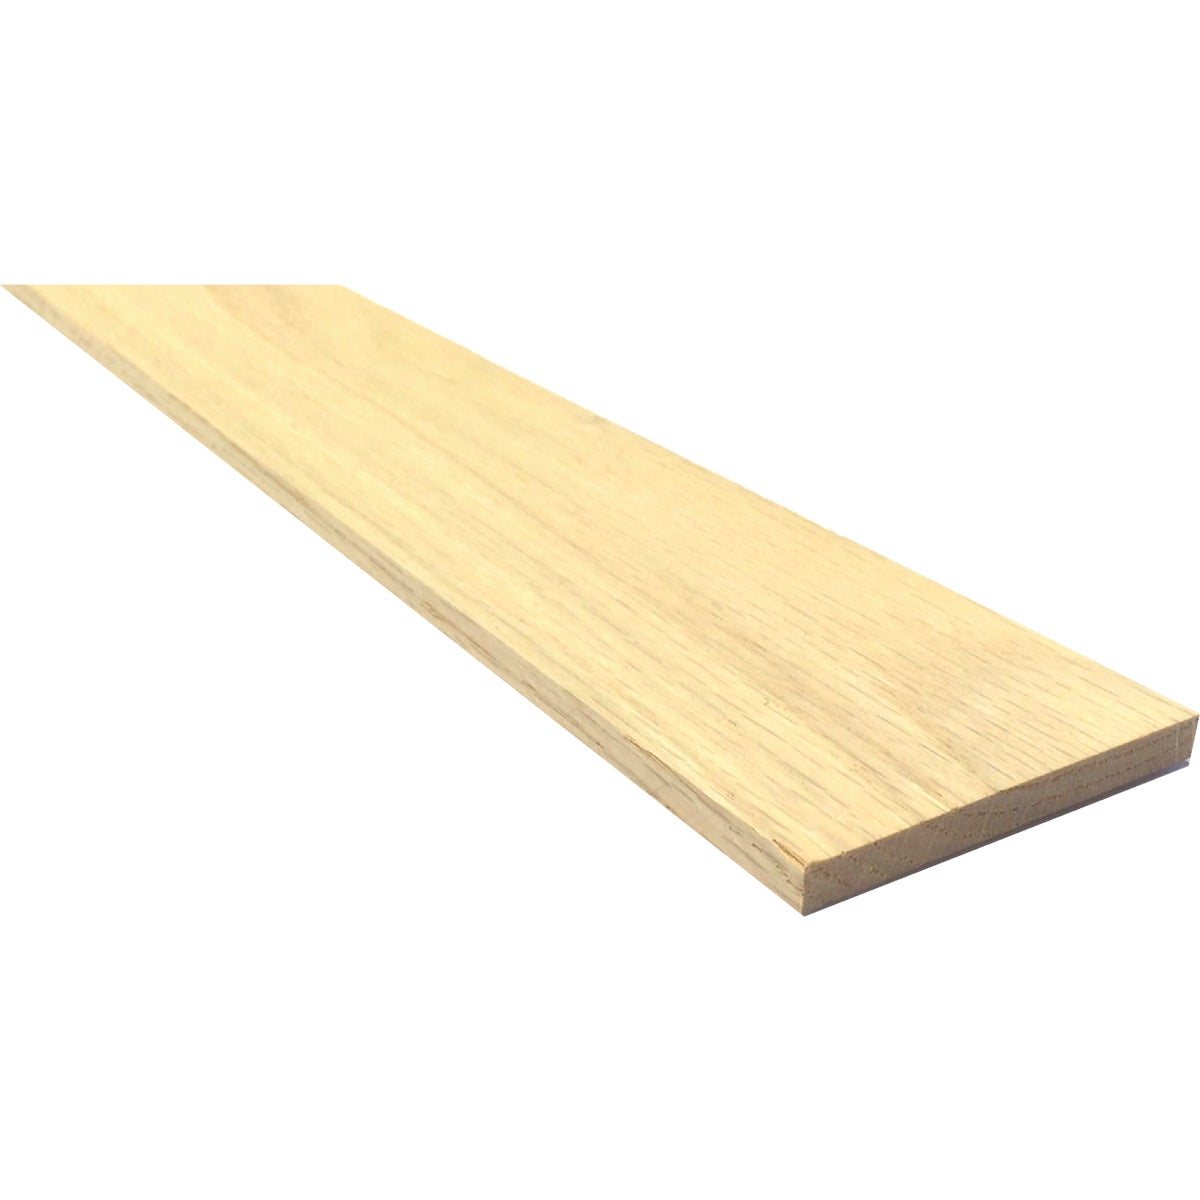 "1/4X4""X4' OAK BOARD - PB19508 by Waddell Mfg Company"